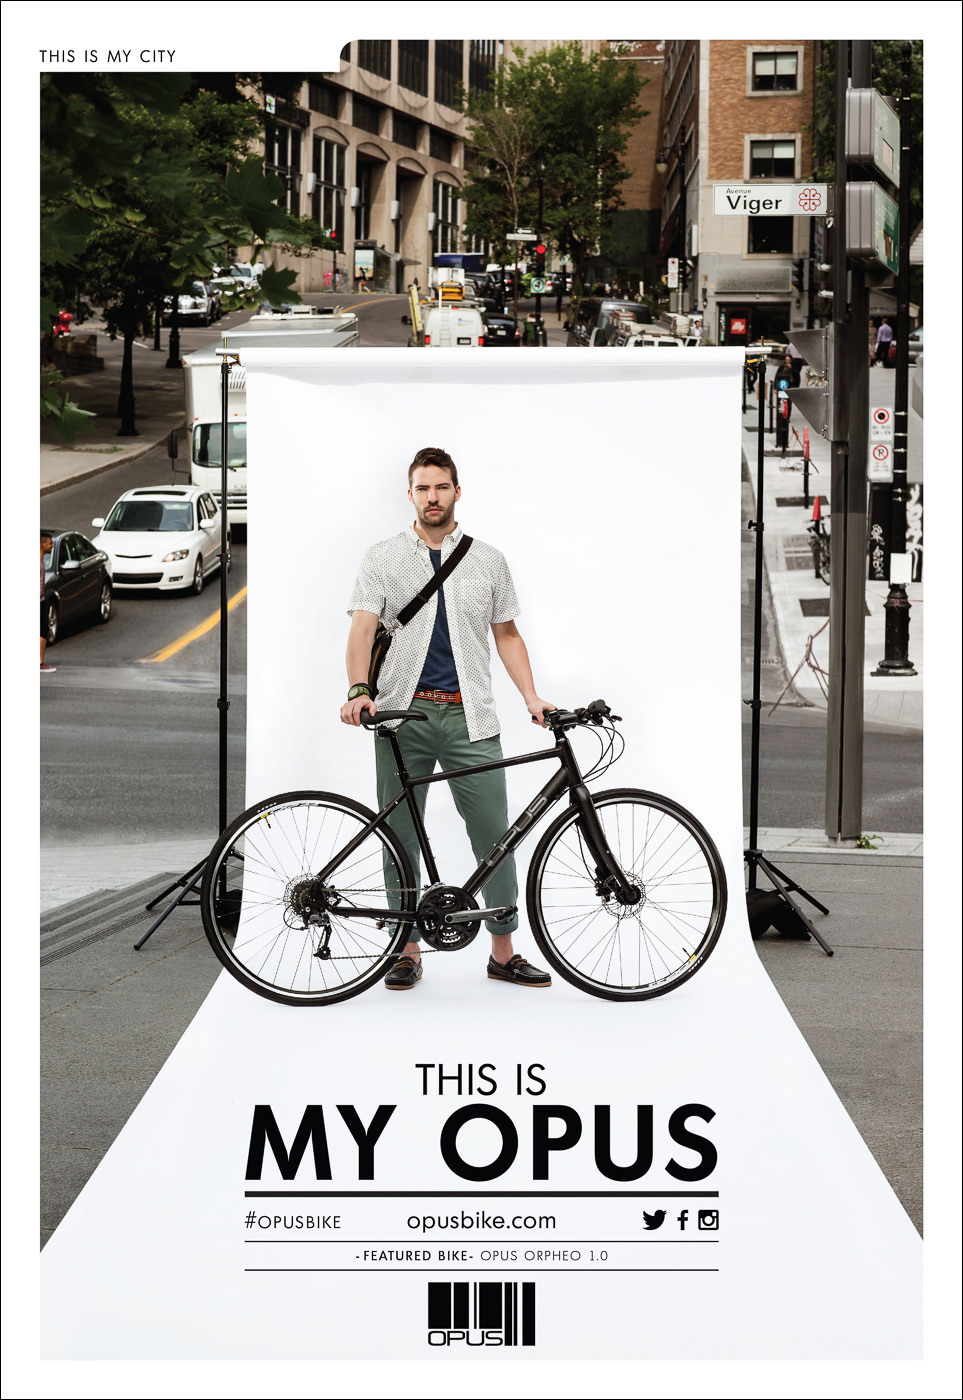 campagne publicite my opus velo hybride orpheo 1.0 urbain